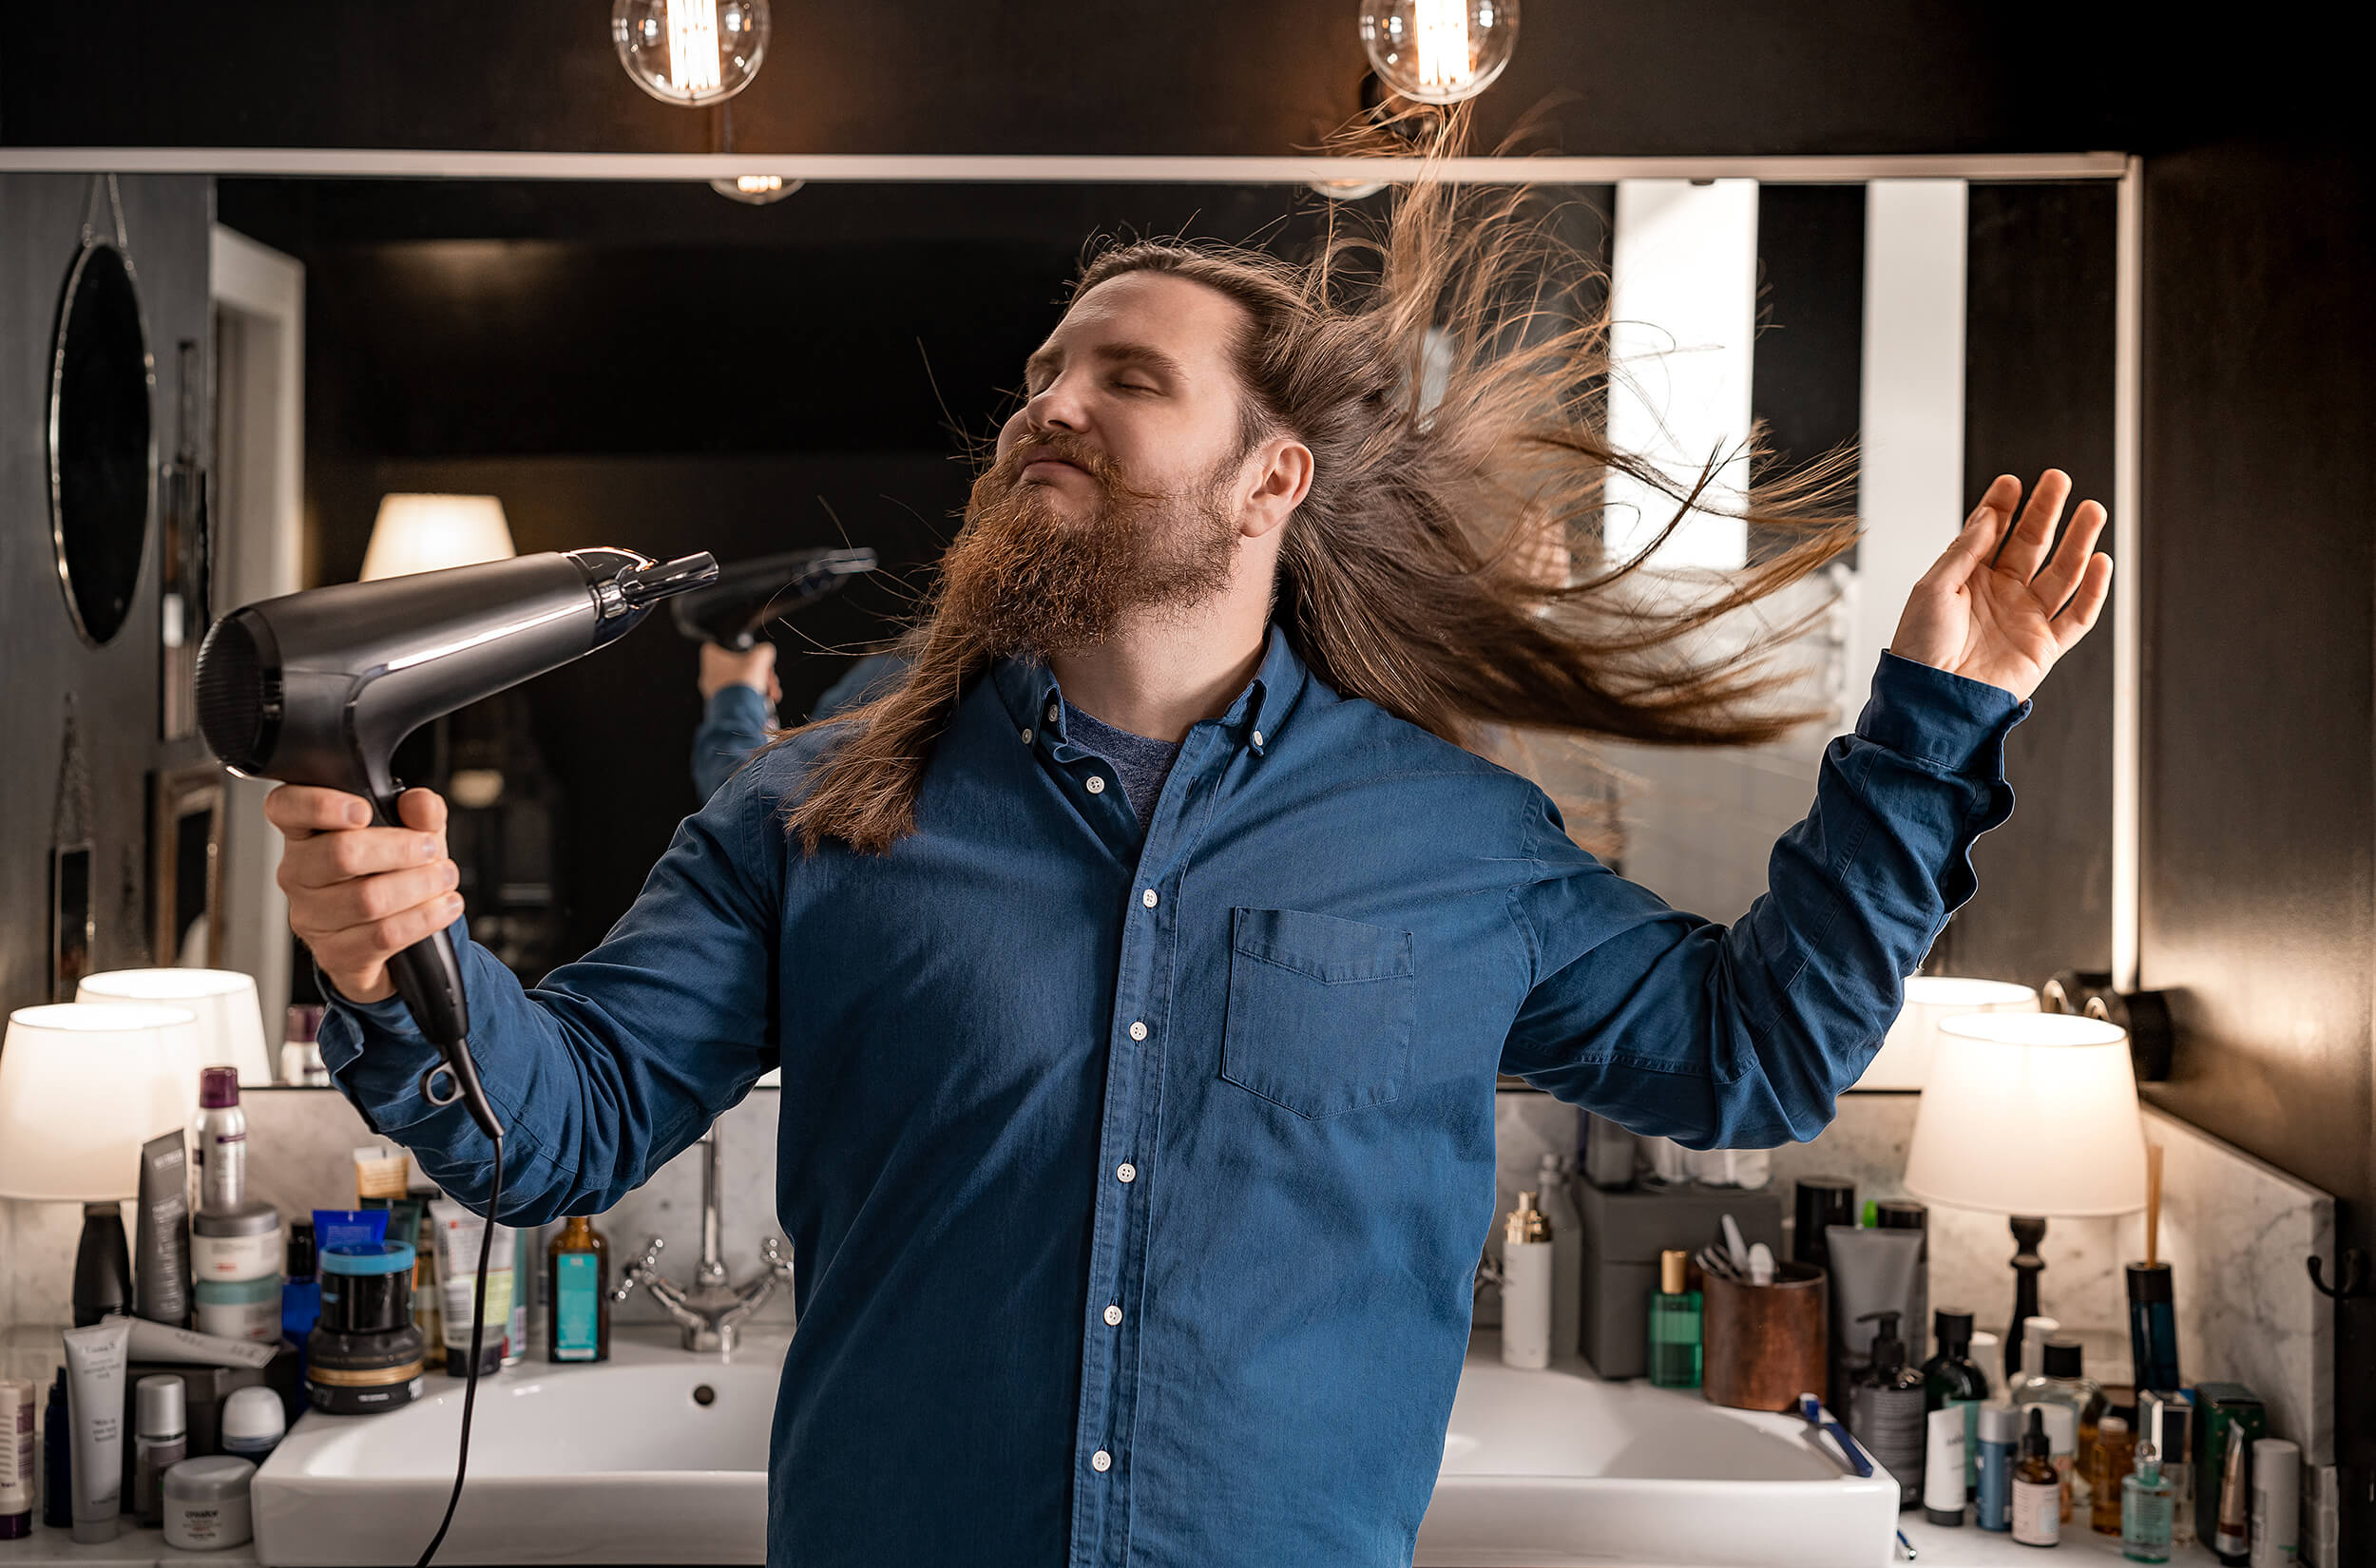 Happy bloke in bathroom. Drying his hair with a great hairdryer.